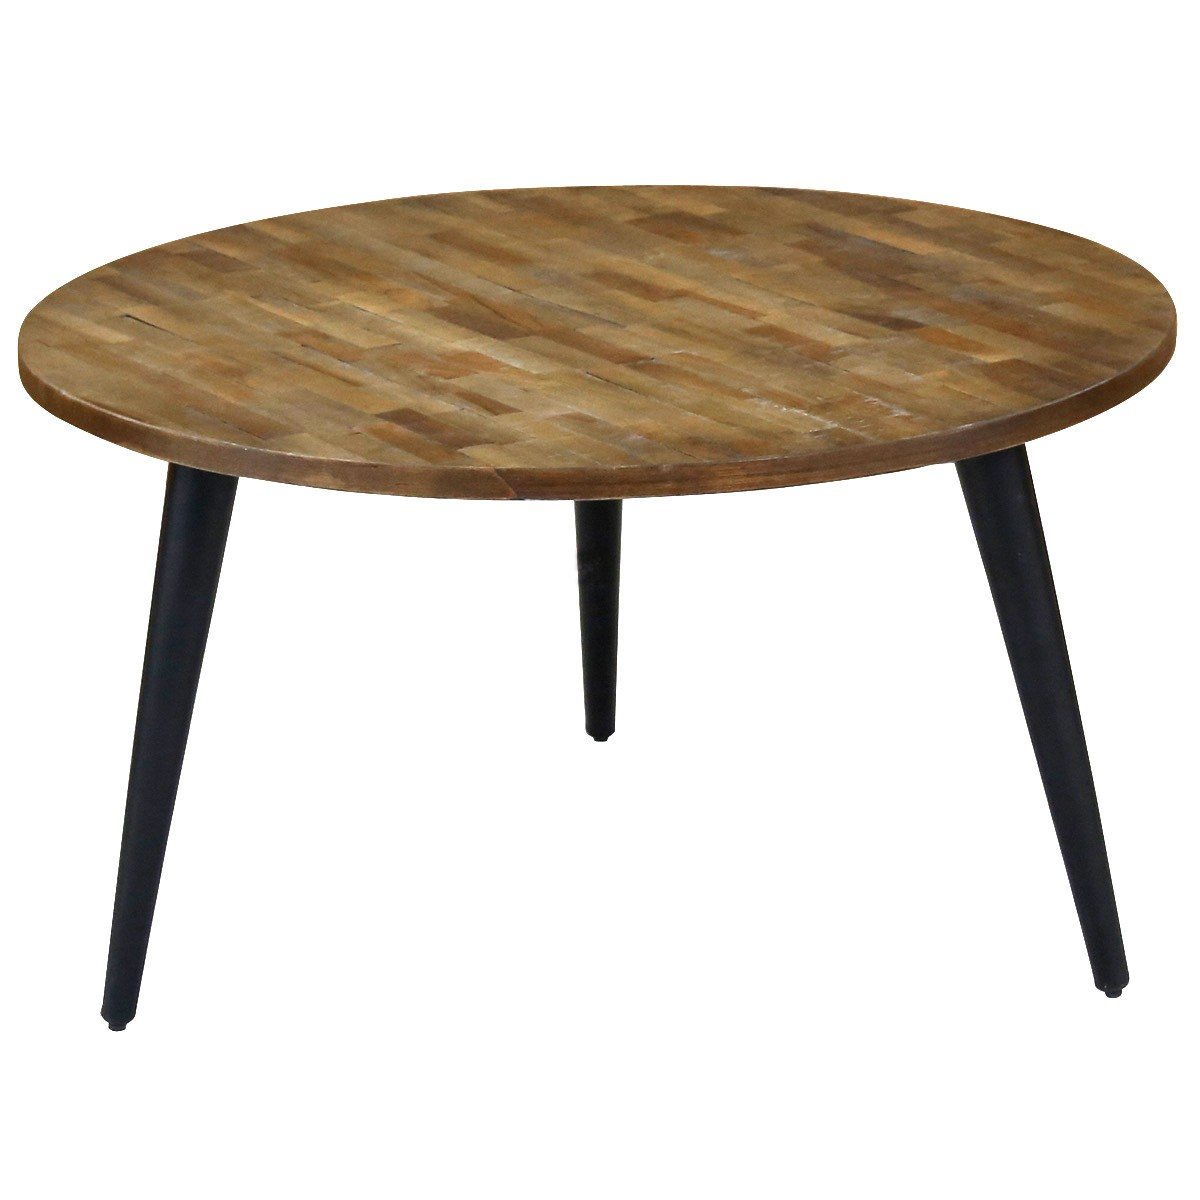 Table basse ronde teck pi tement m tal 80 cm style for Table basse scandinave ronde copenhague 80